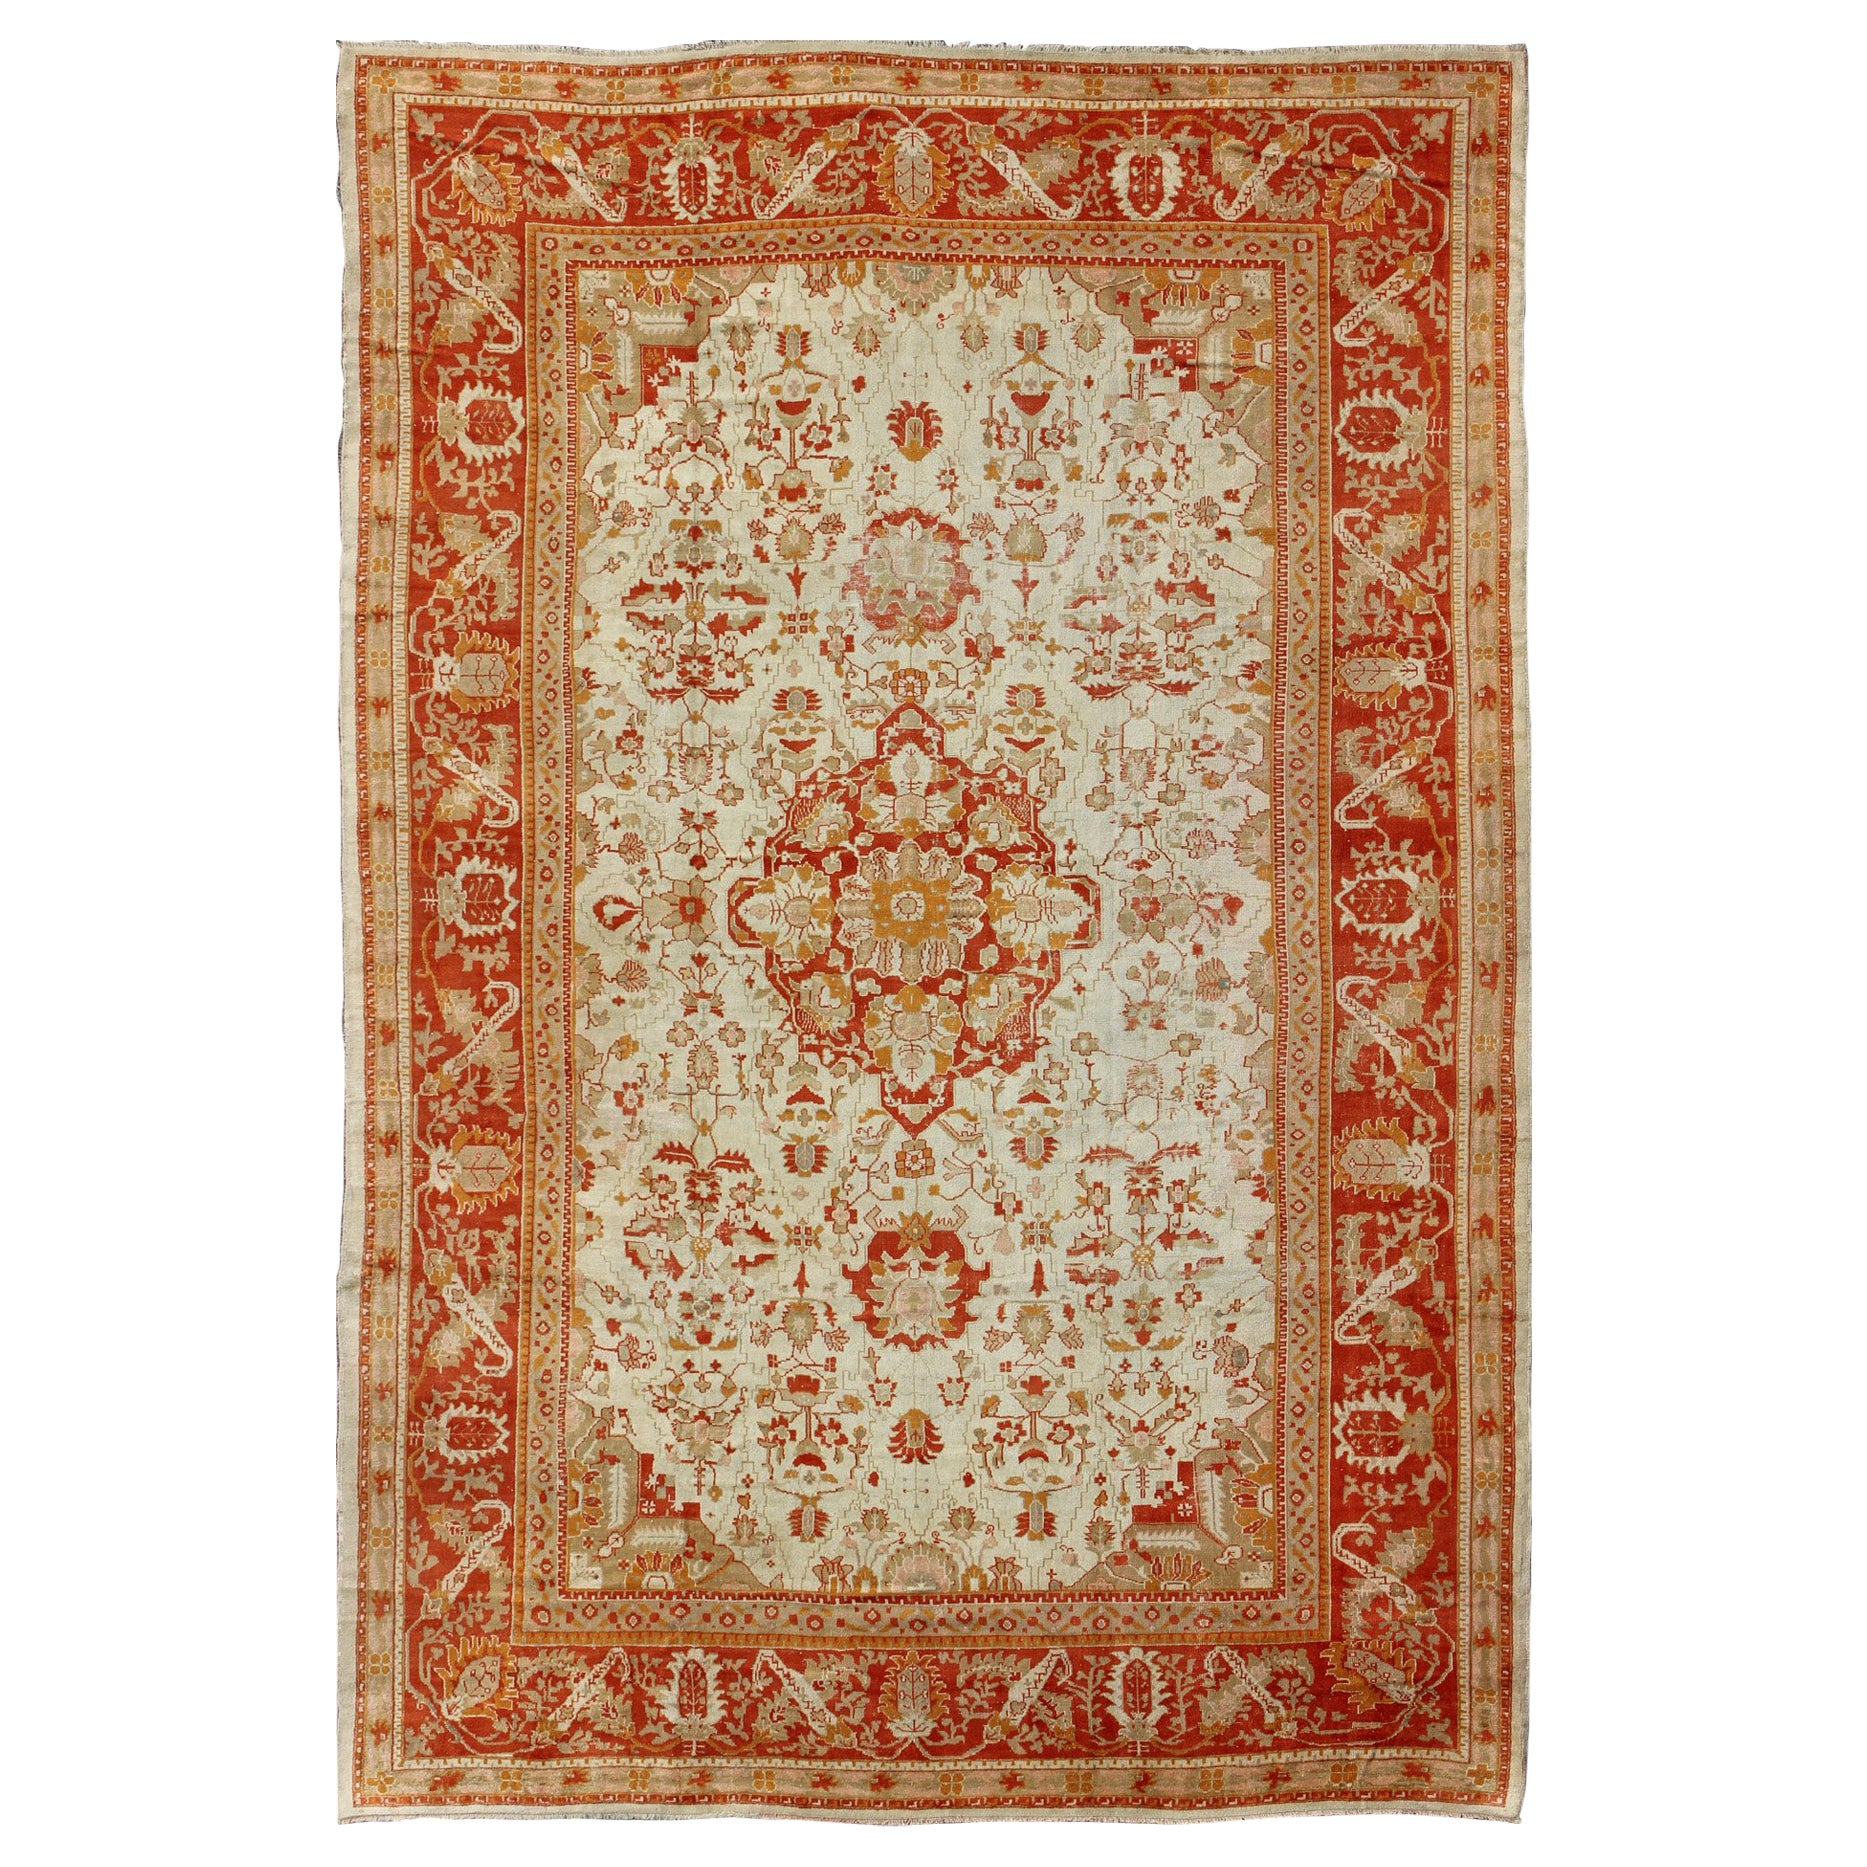 Antique Oushak Rug From Turkey With Floral Motifs In Red